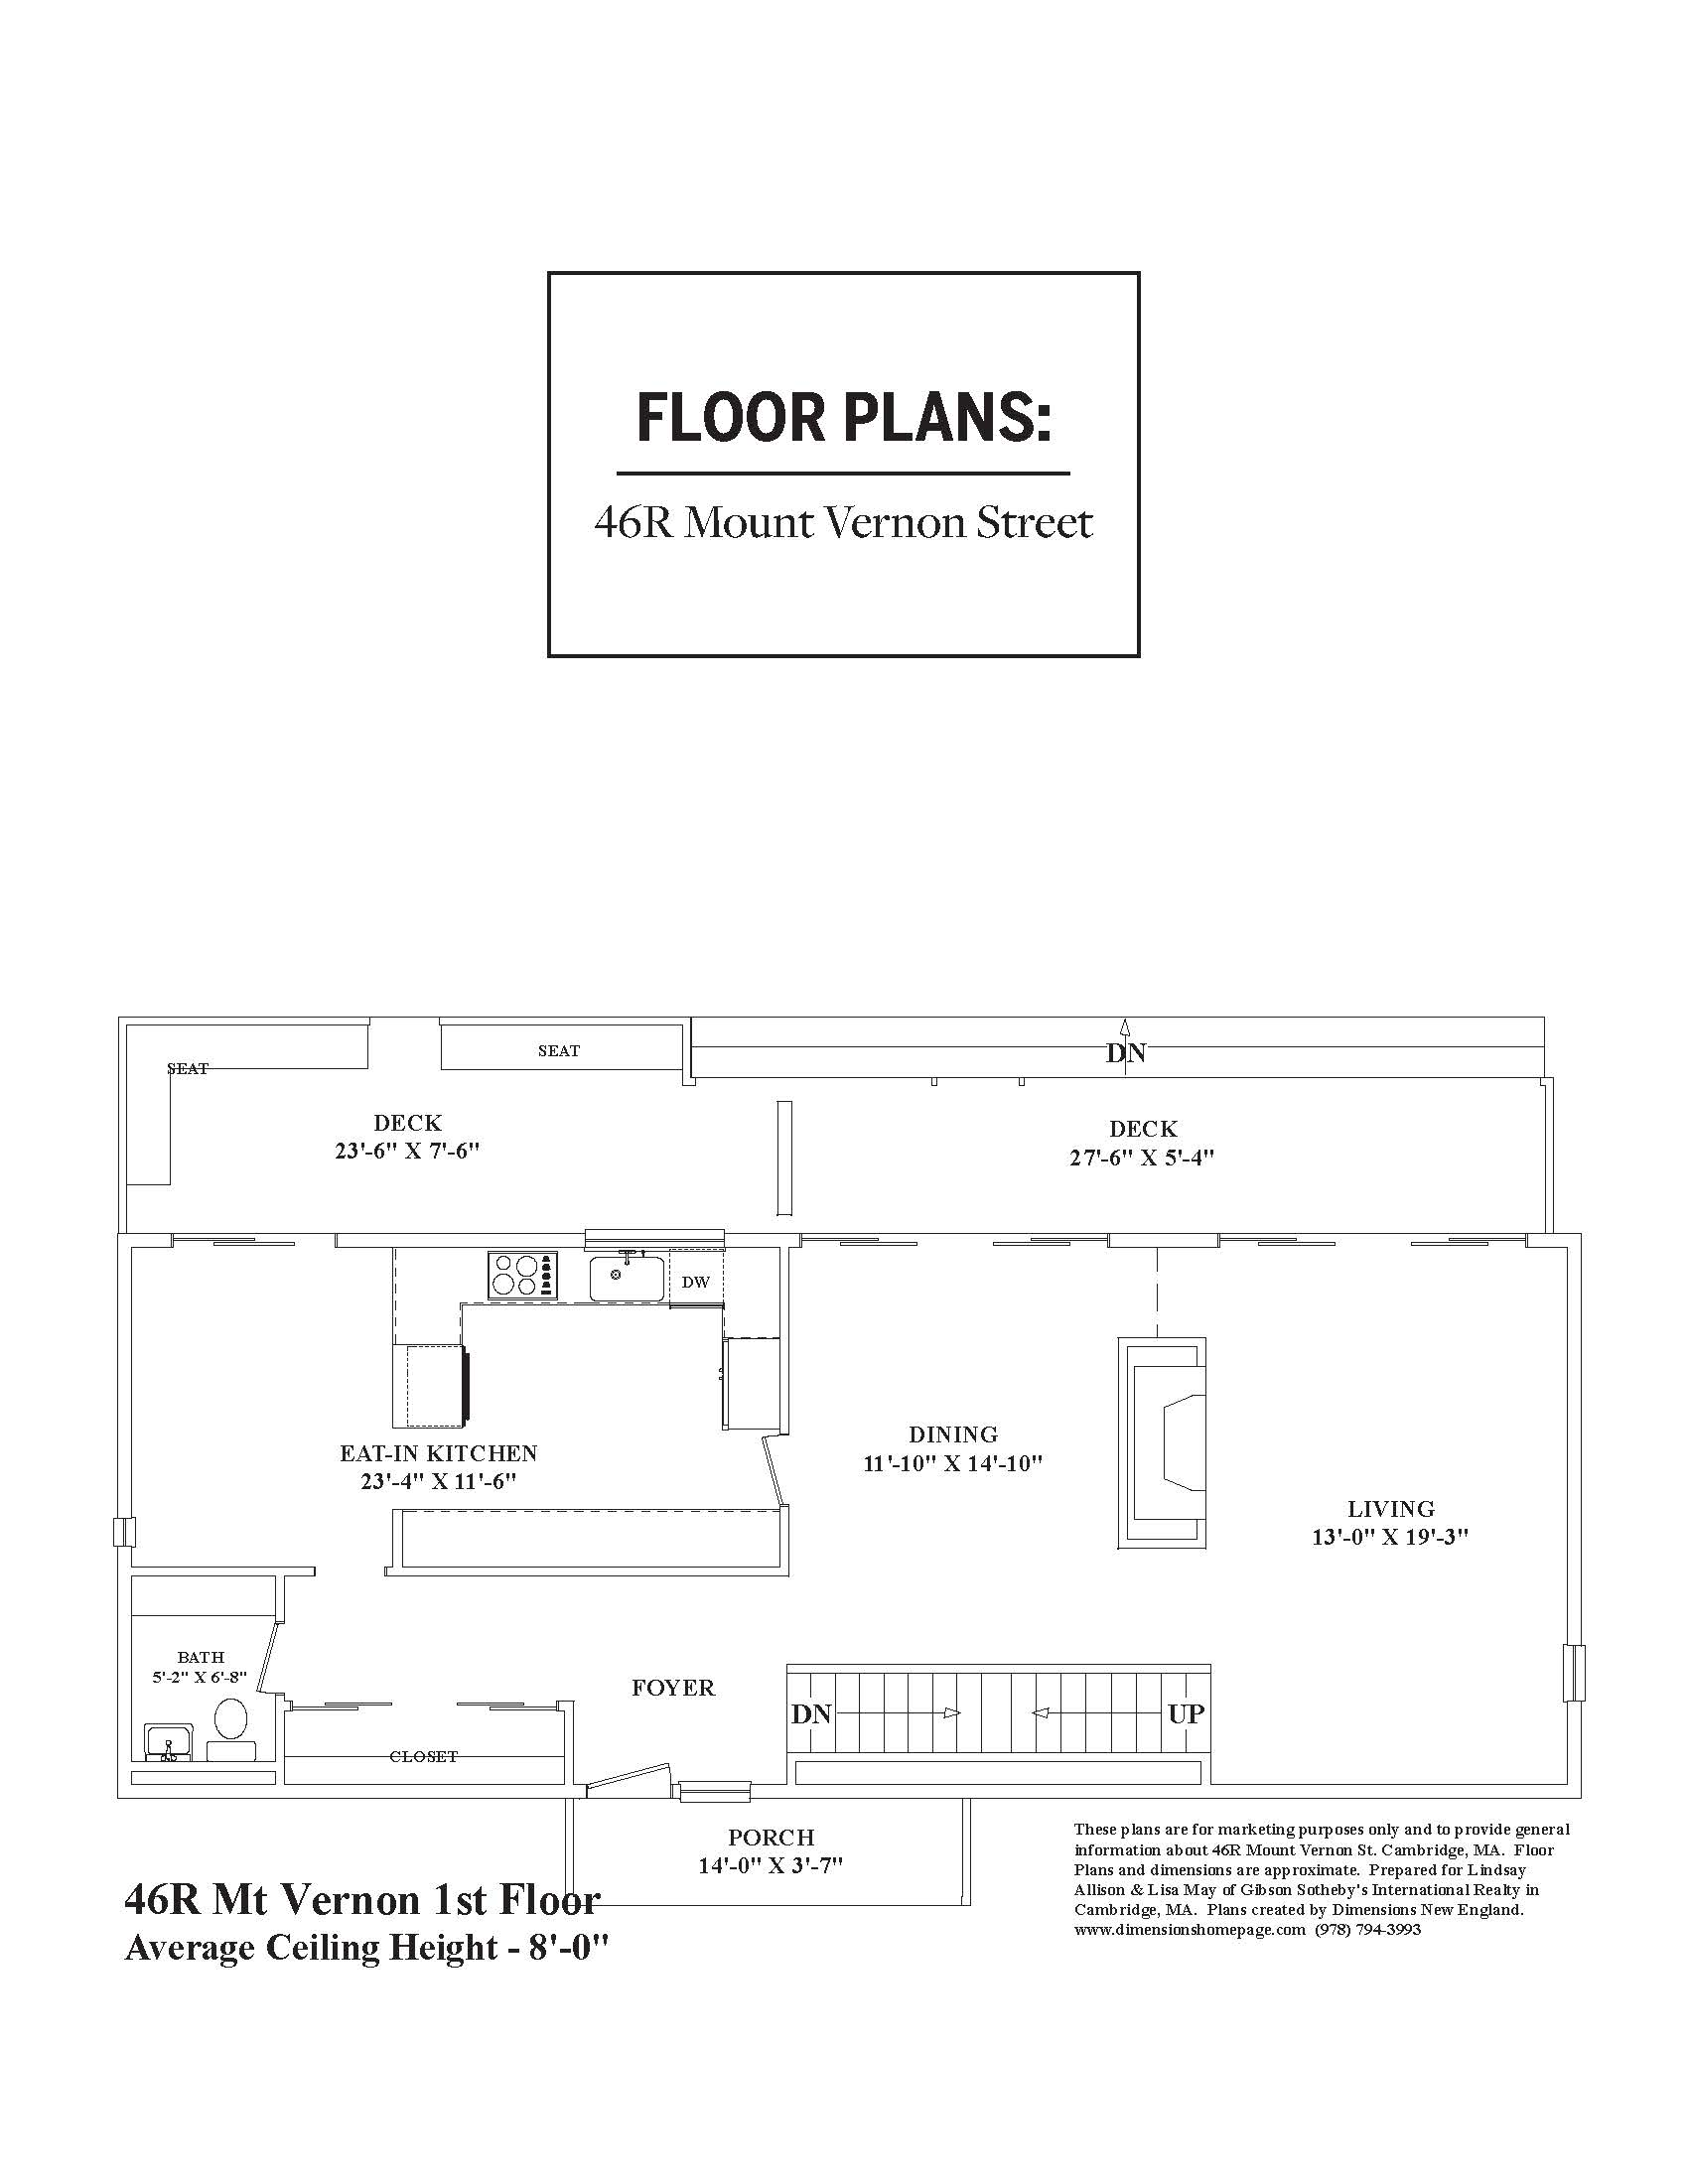 46MtV_FloorPlans_ColorCoded_Page_3.jpg